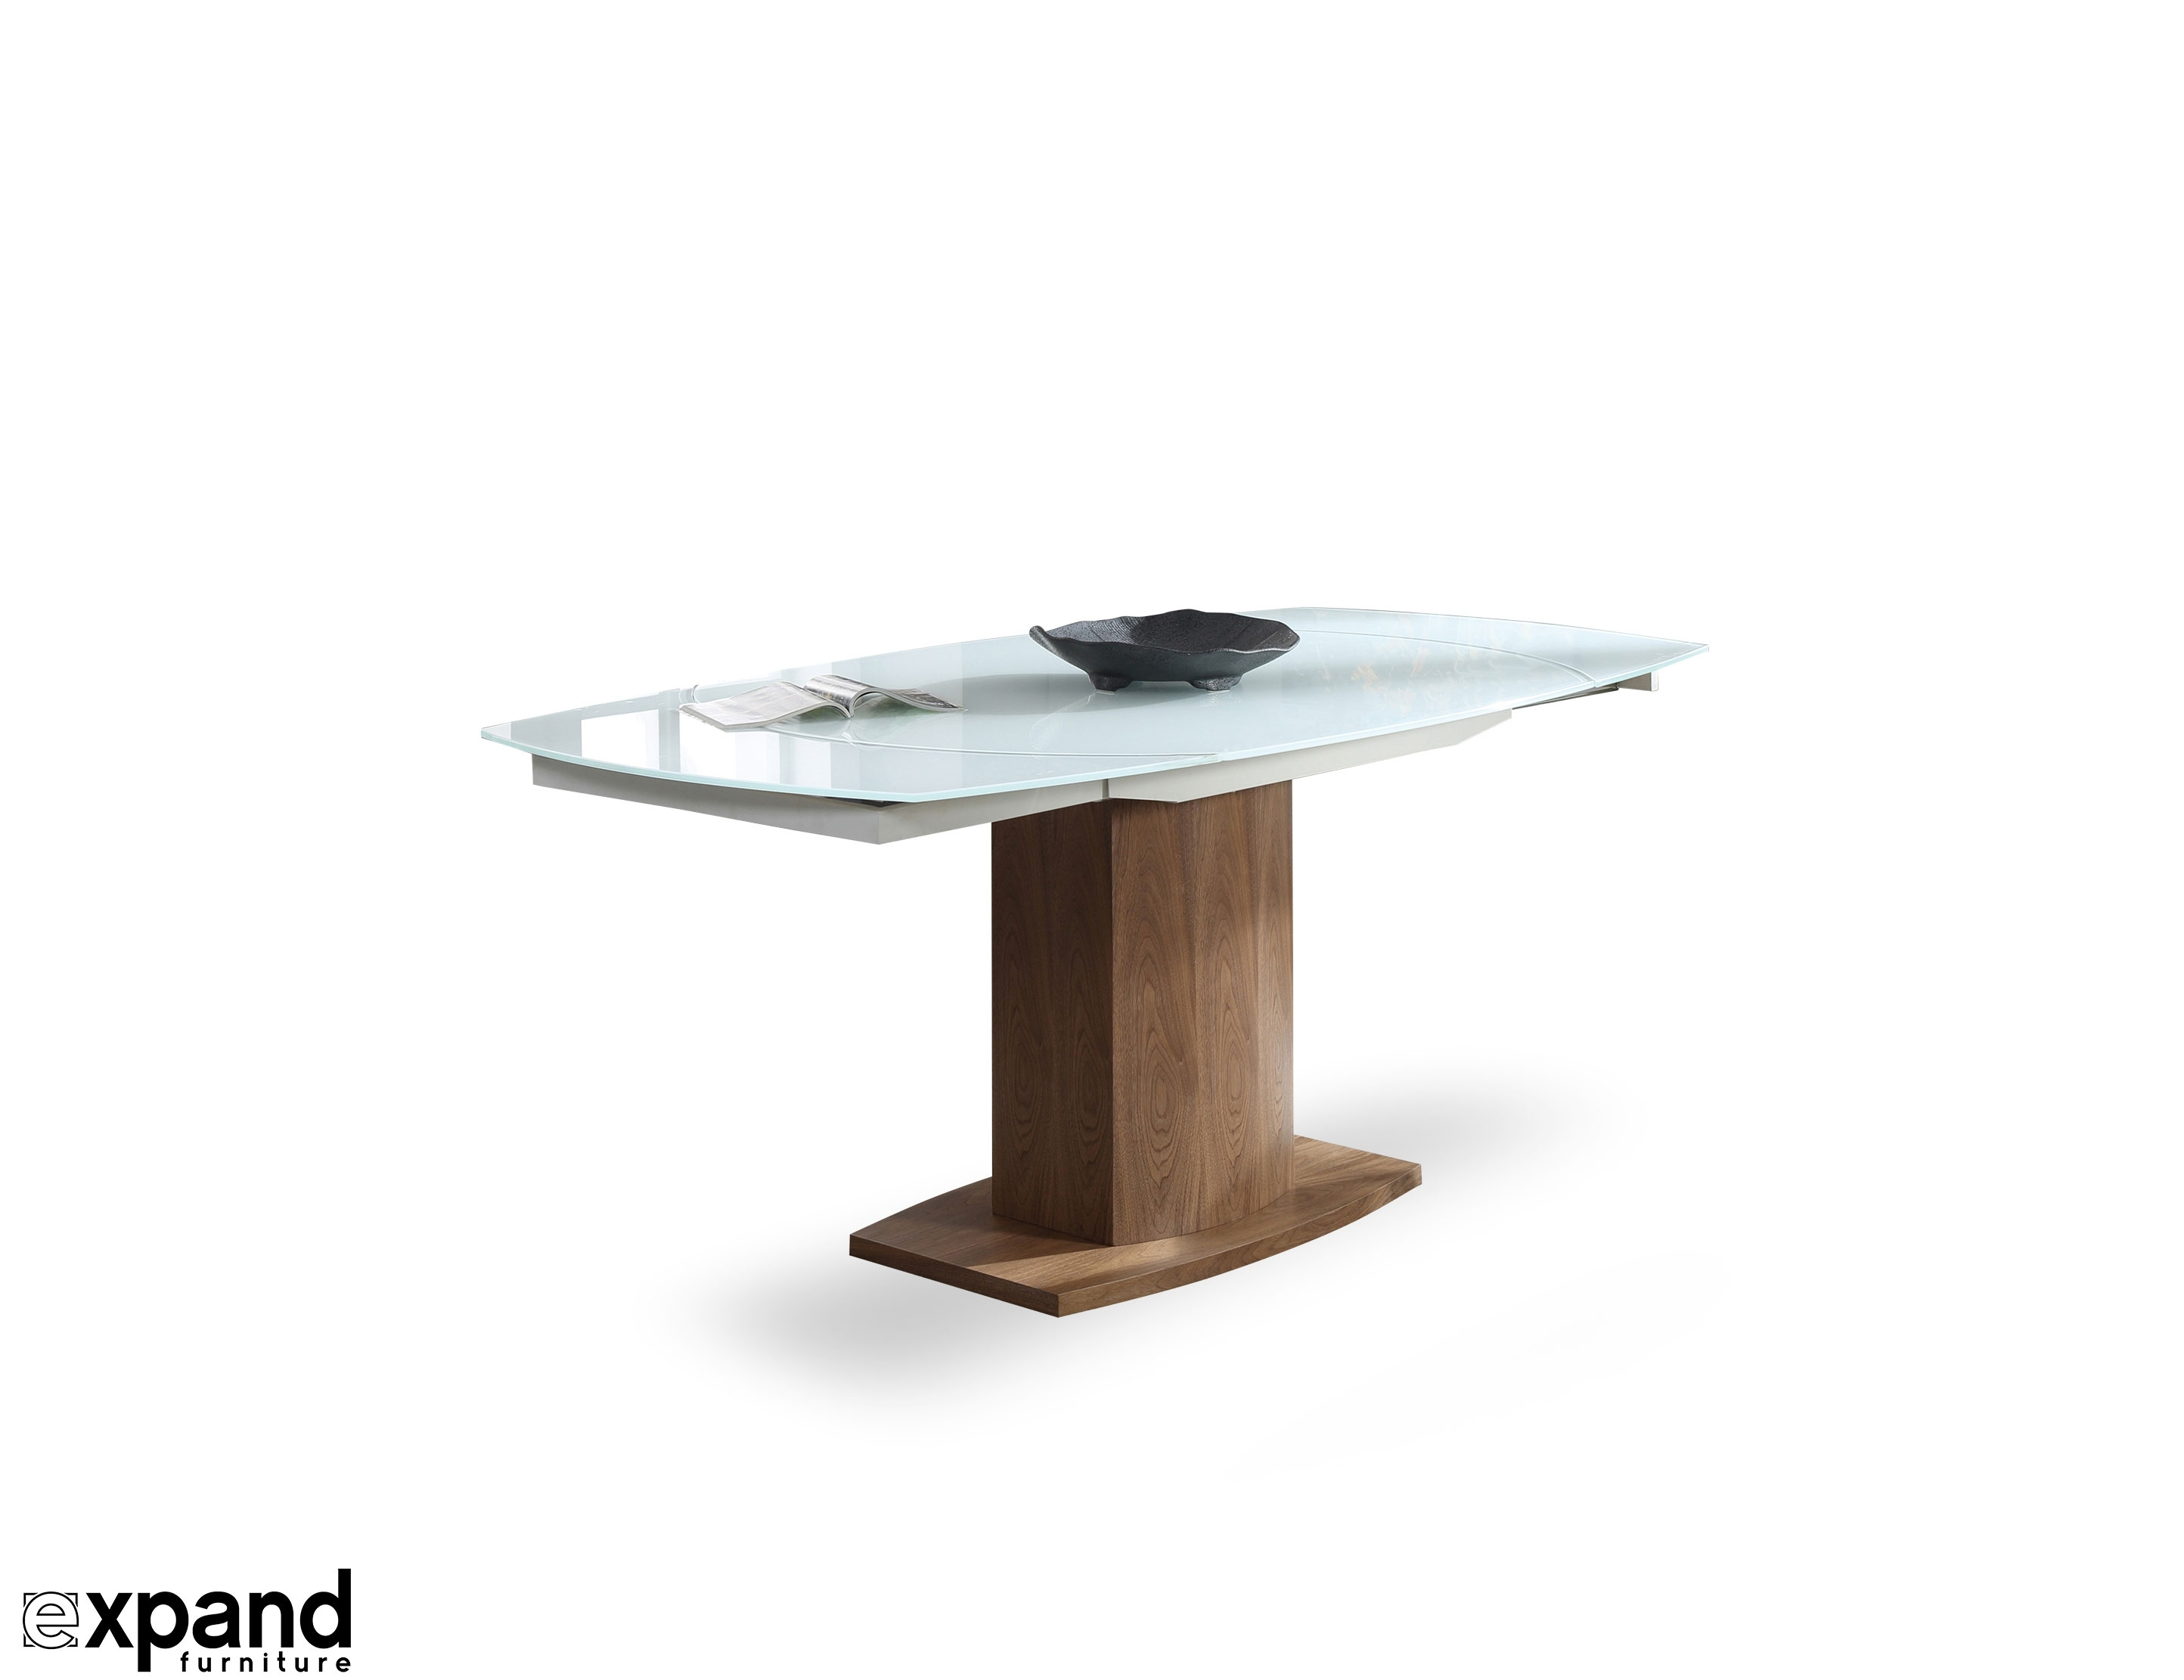 Baobab: Oval Glass White Extendable Kitchen Table with Spin Rotating Coffee Tables (Image 6 of 30)